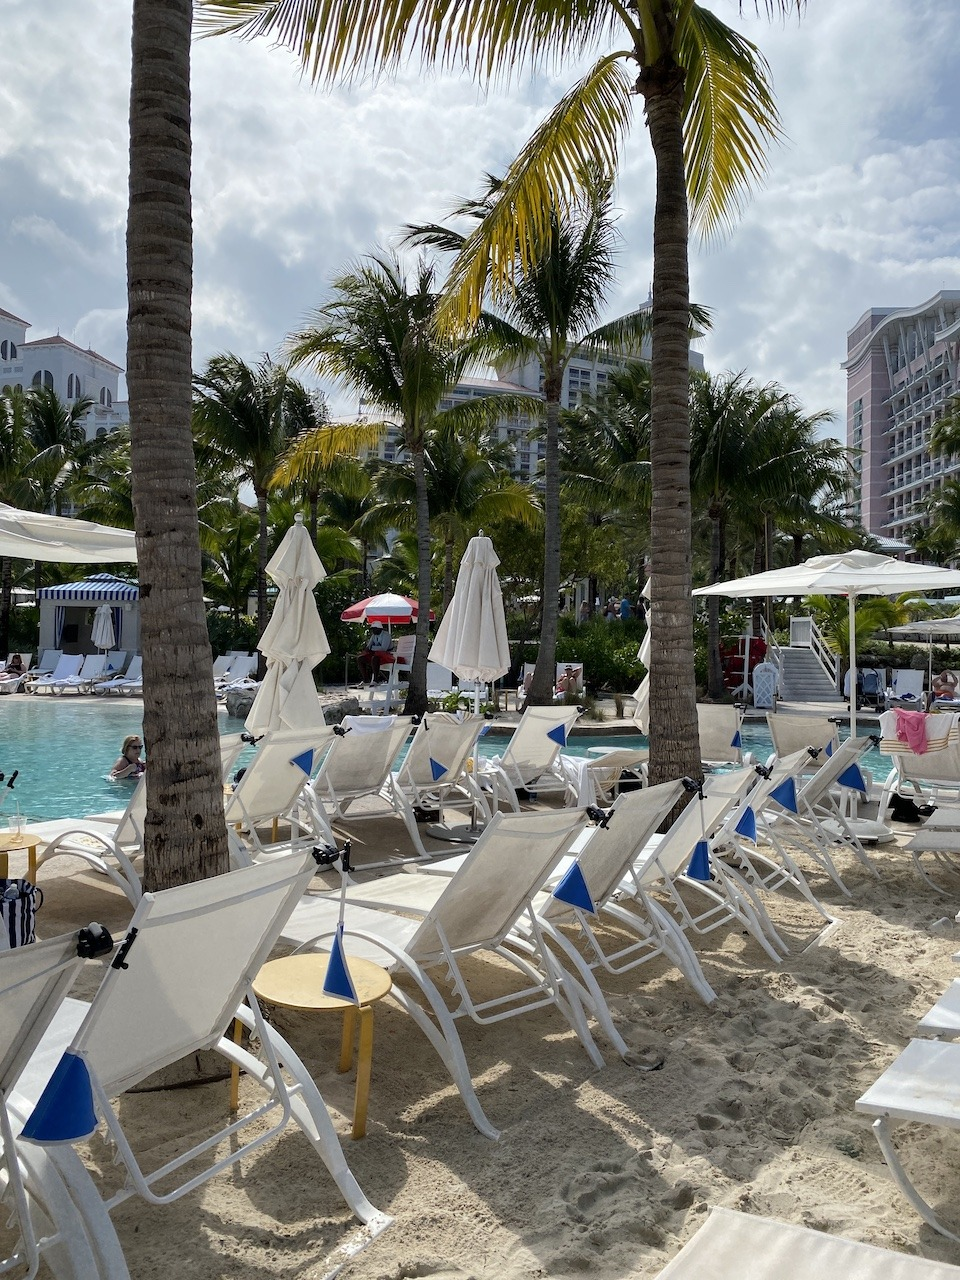 Lounge chairs at pool